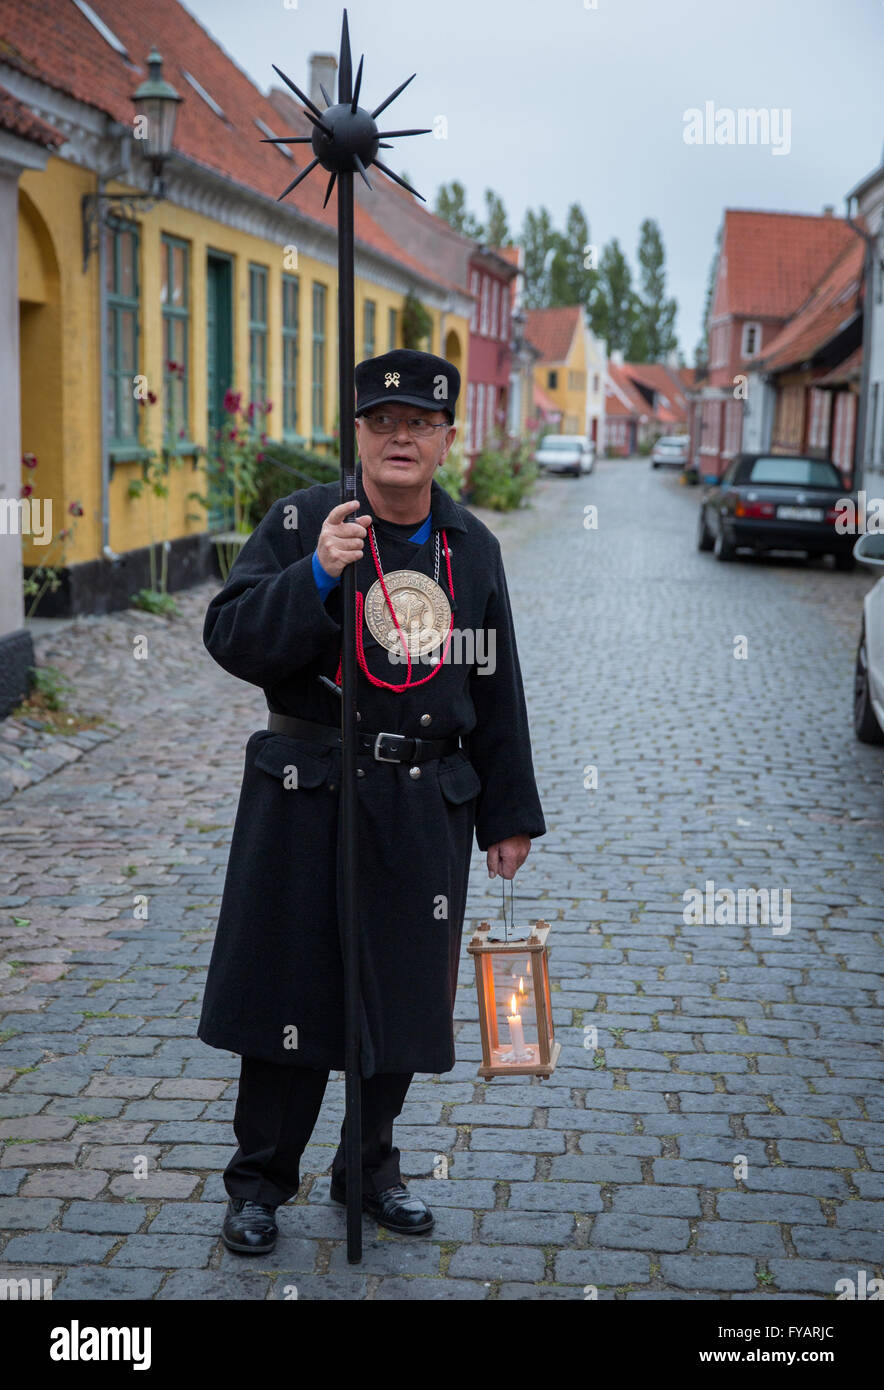 The night watchman tour guide in Ærøskøbing, Denmark Stock Photo